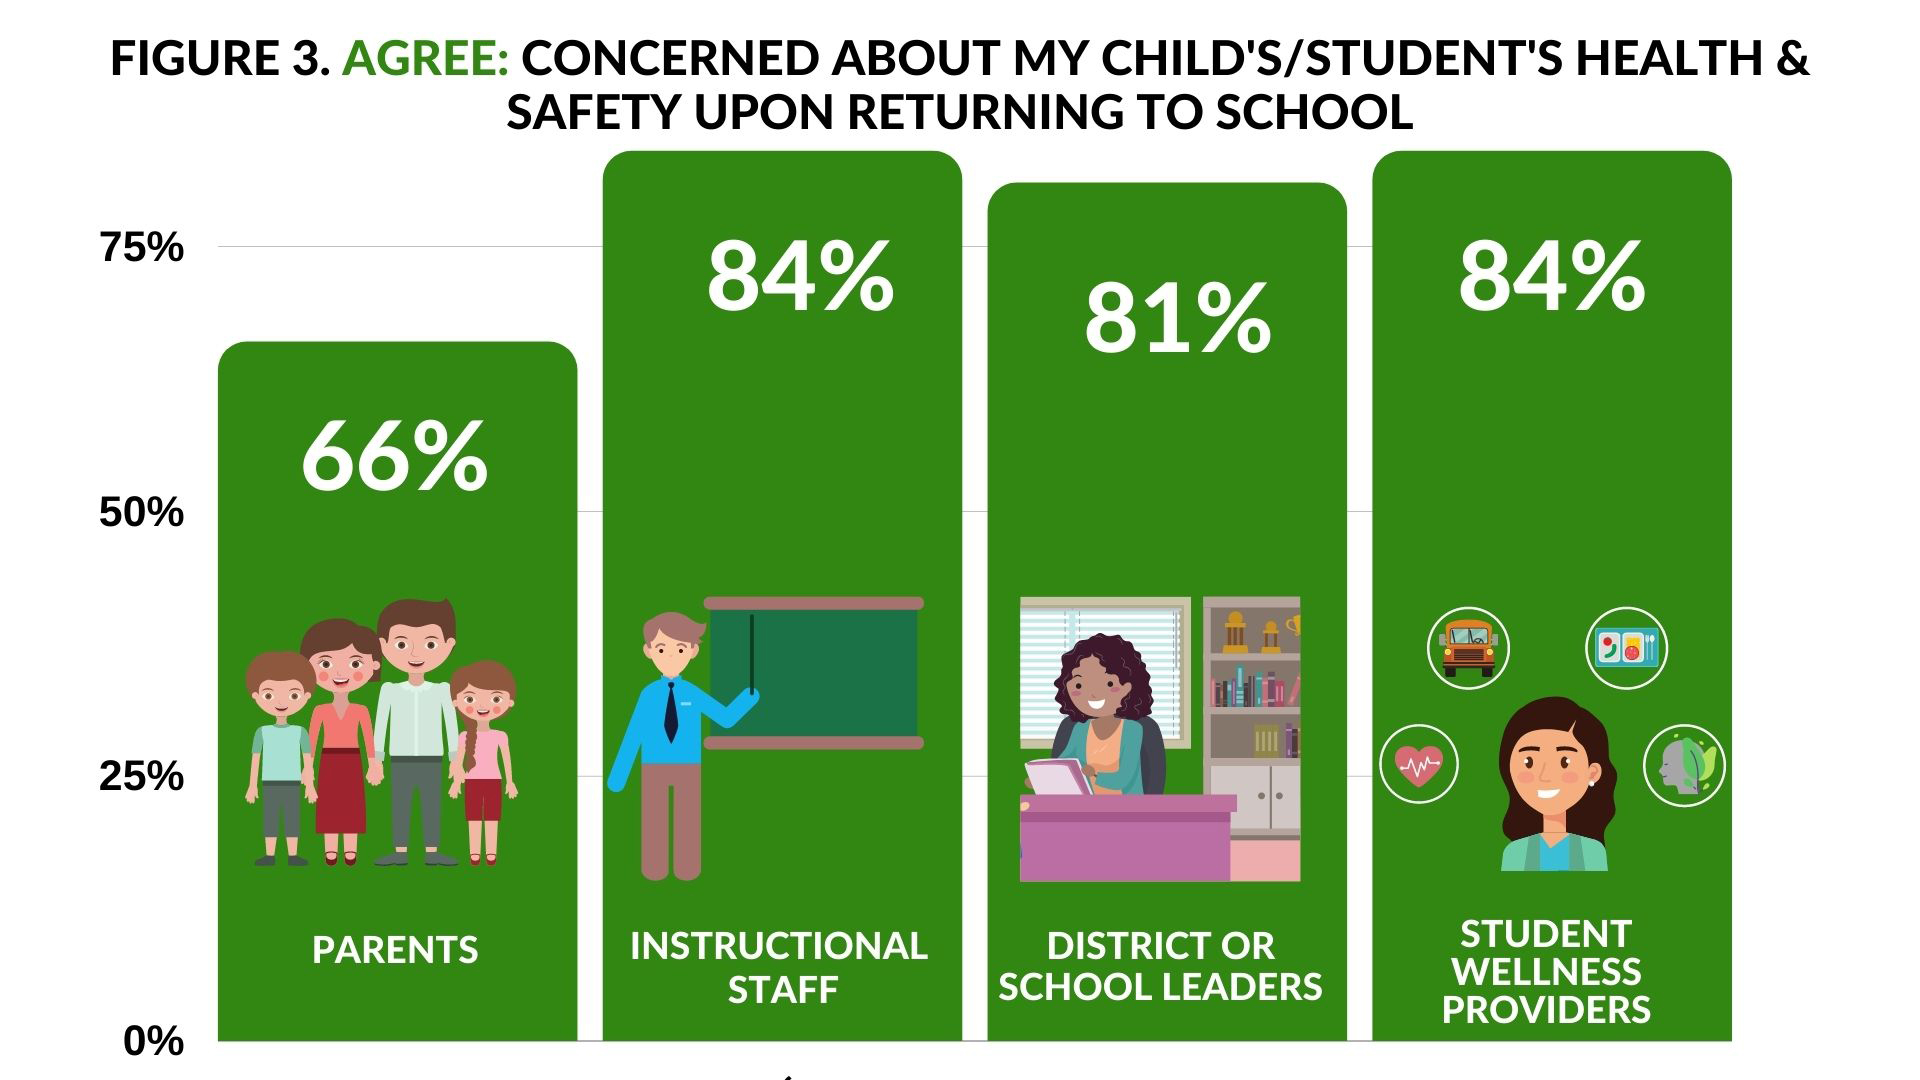 Agree concerned about child's health- 66% parents; 84% Instructional Staff; 81% District of School Leaders; 84% Student Wellness Providers